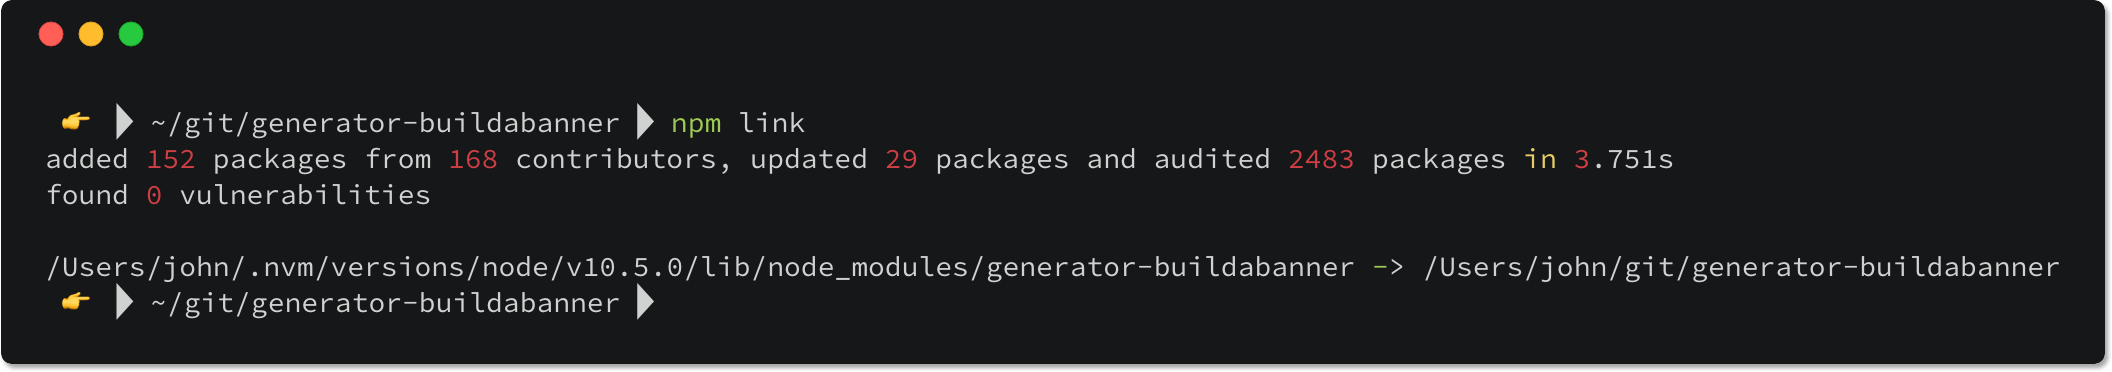 Npm Link Example